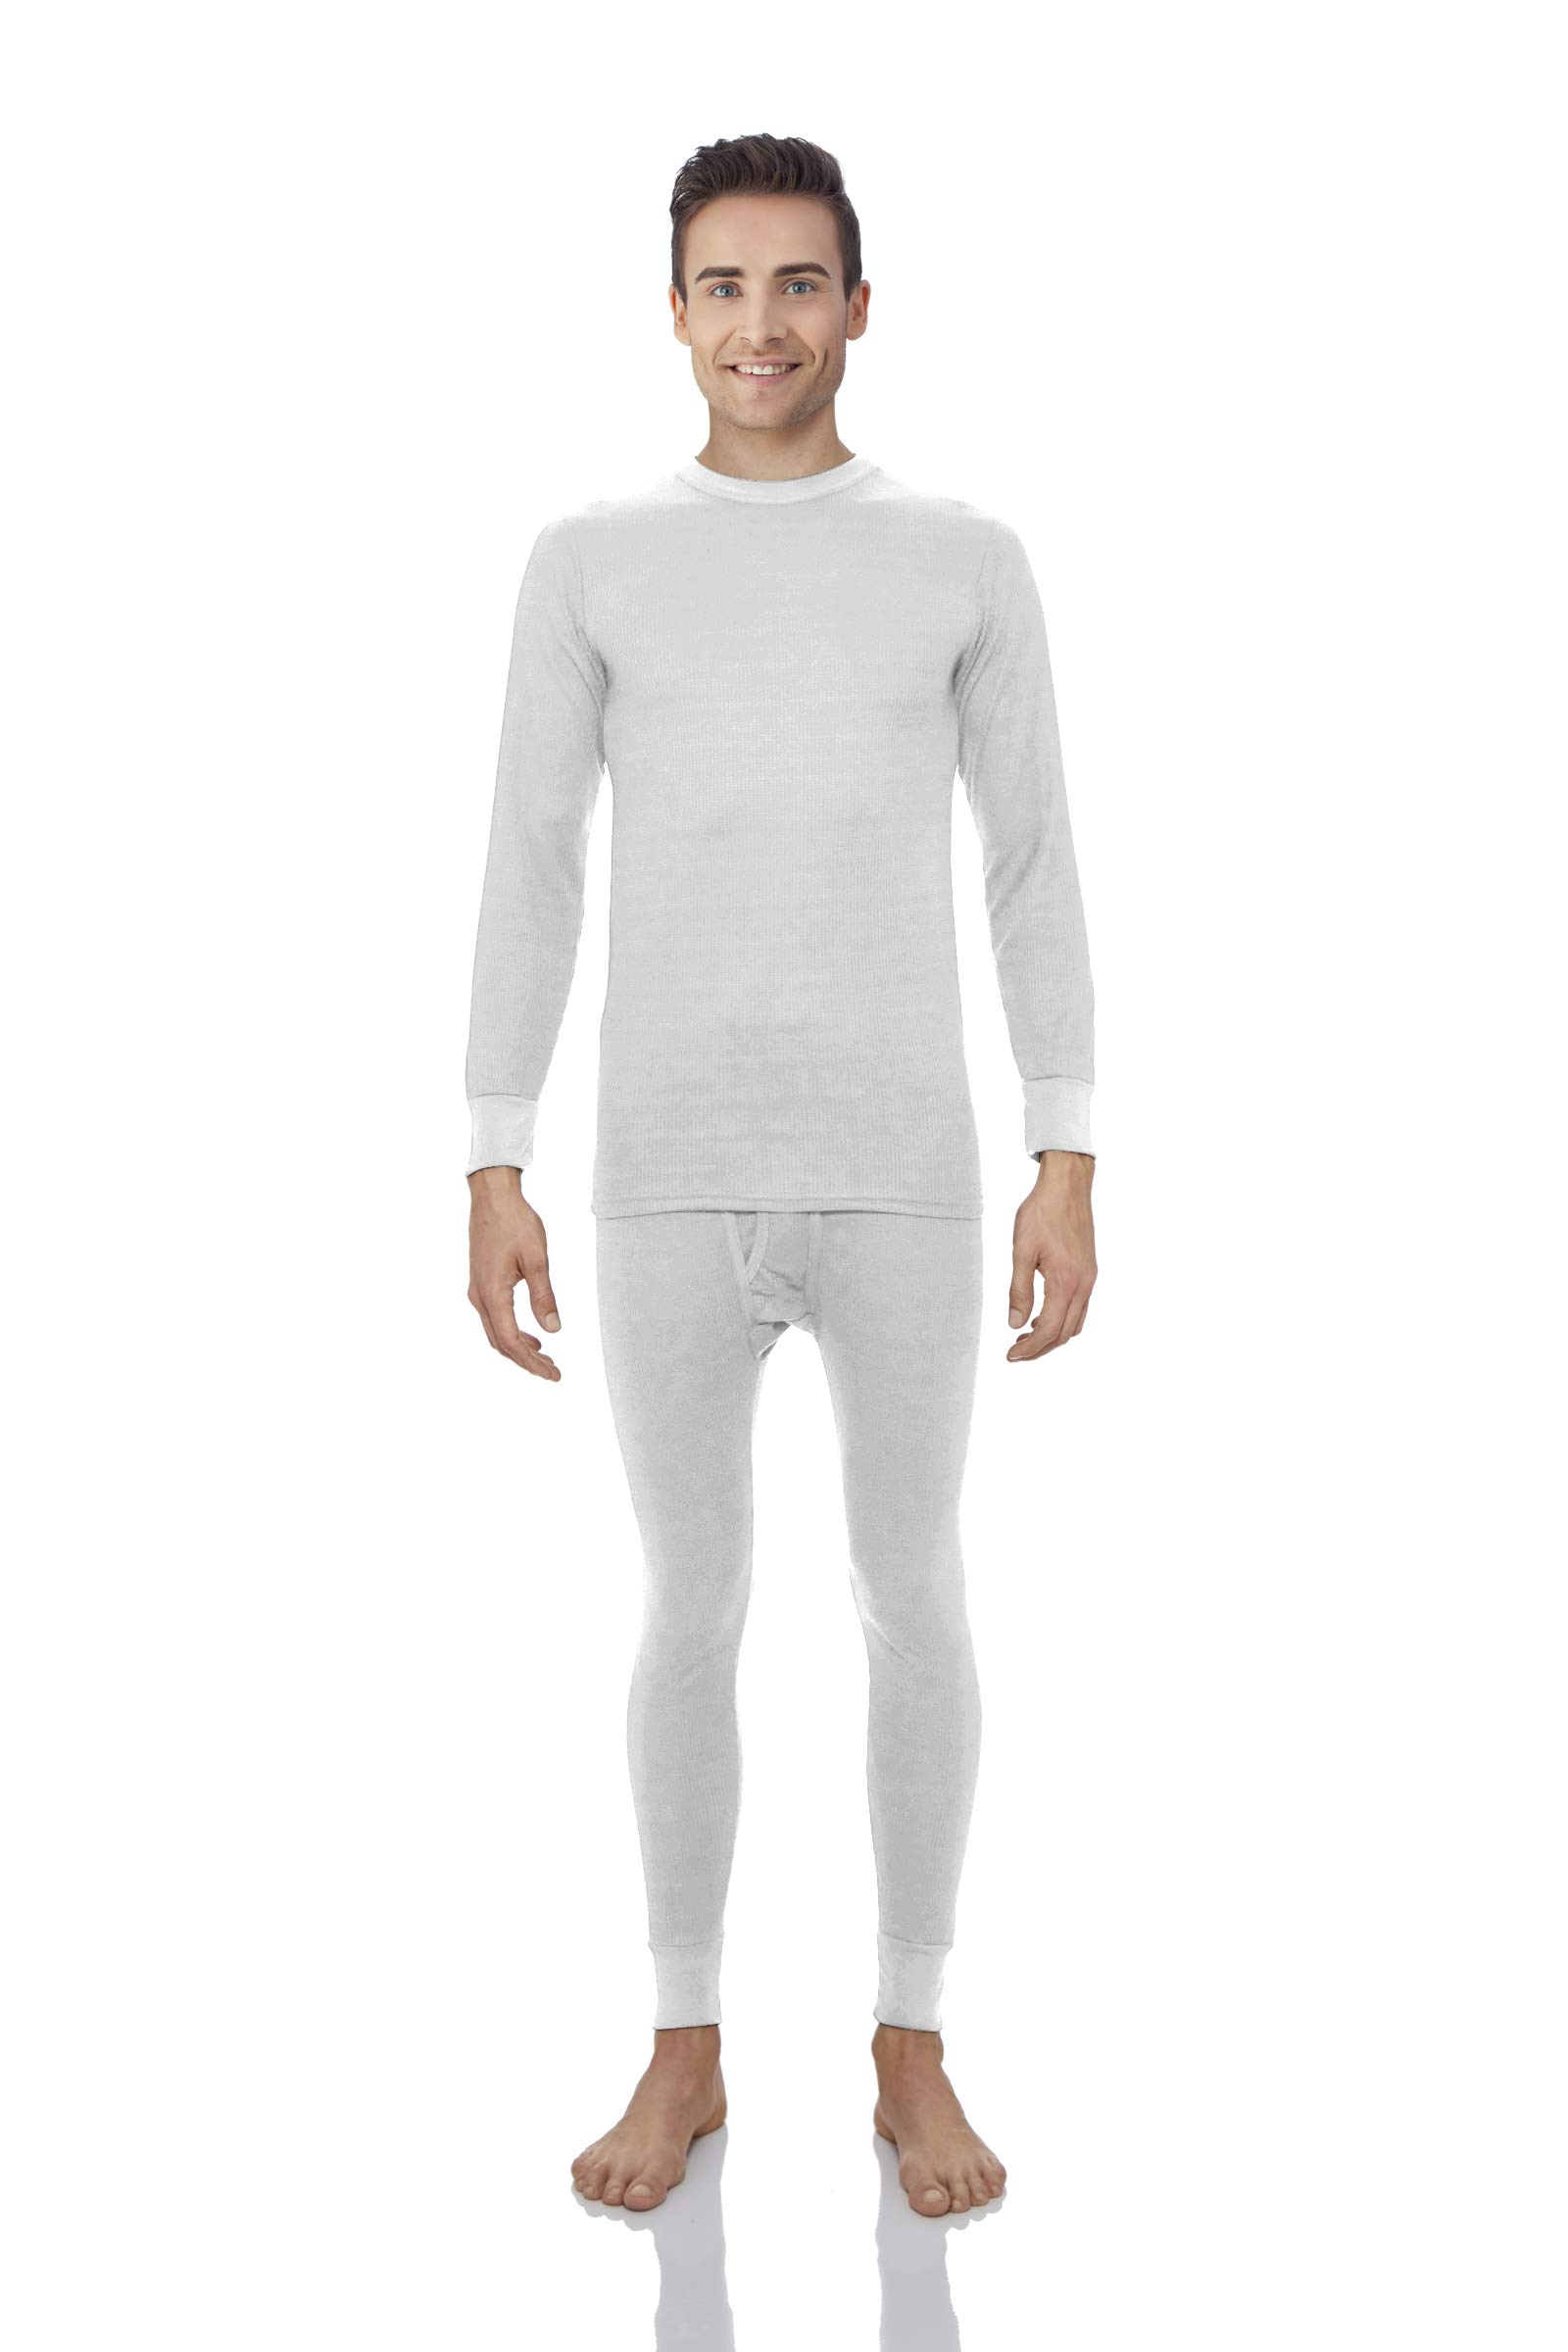 Rocky Thermal Underwear for Men Waffle Thermals Men's Base Layer Long John Set